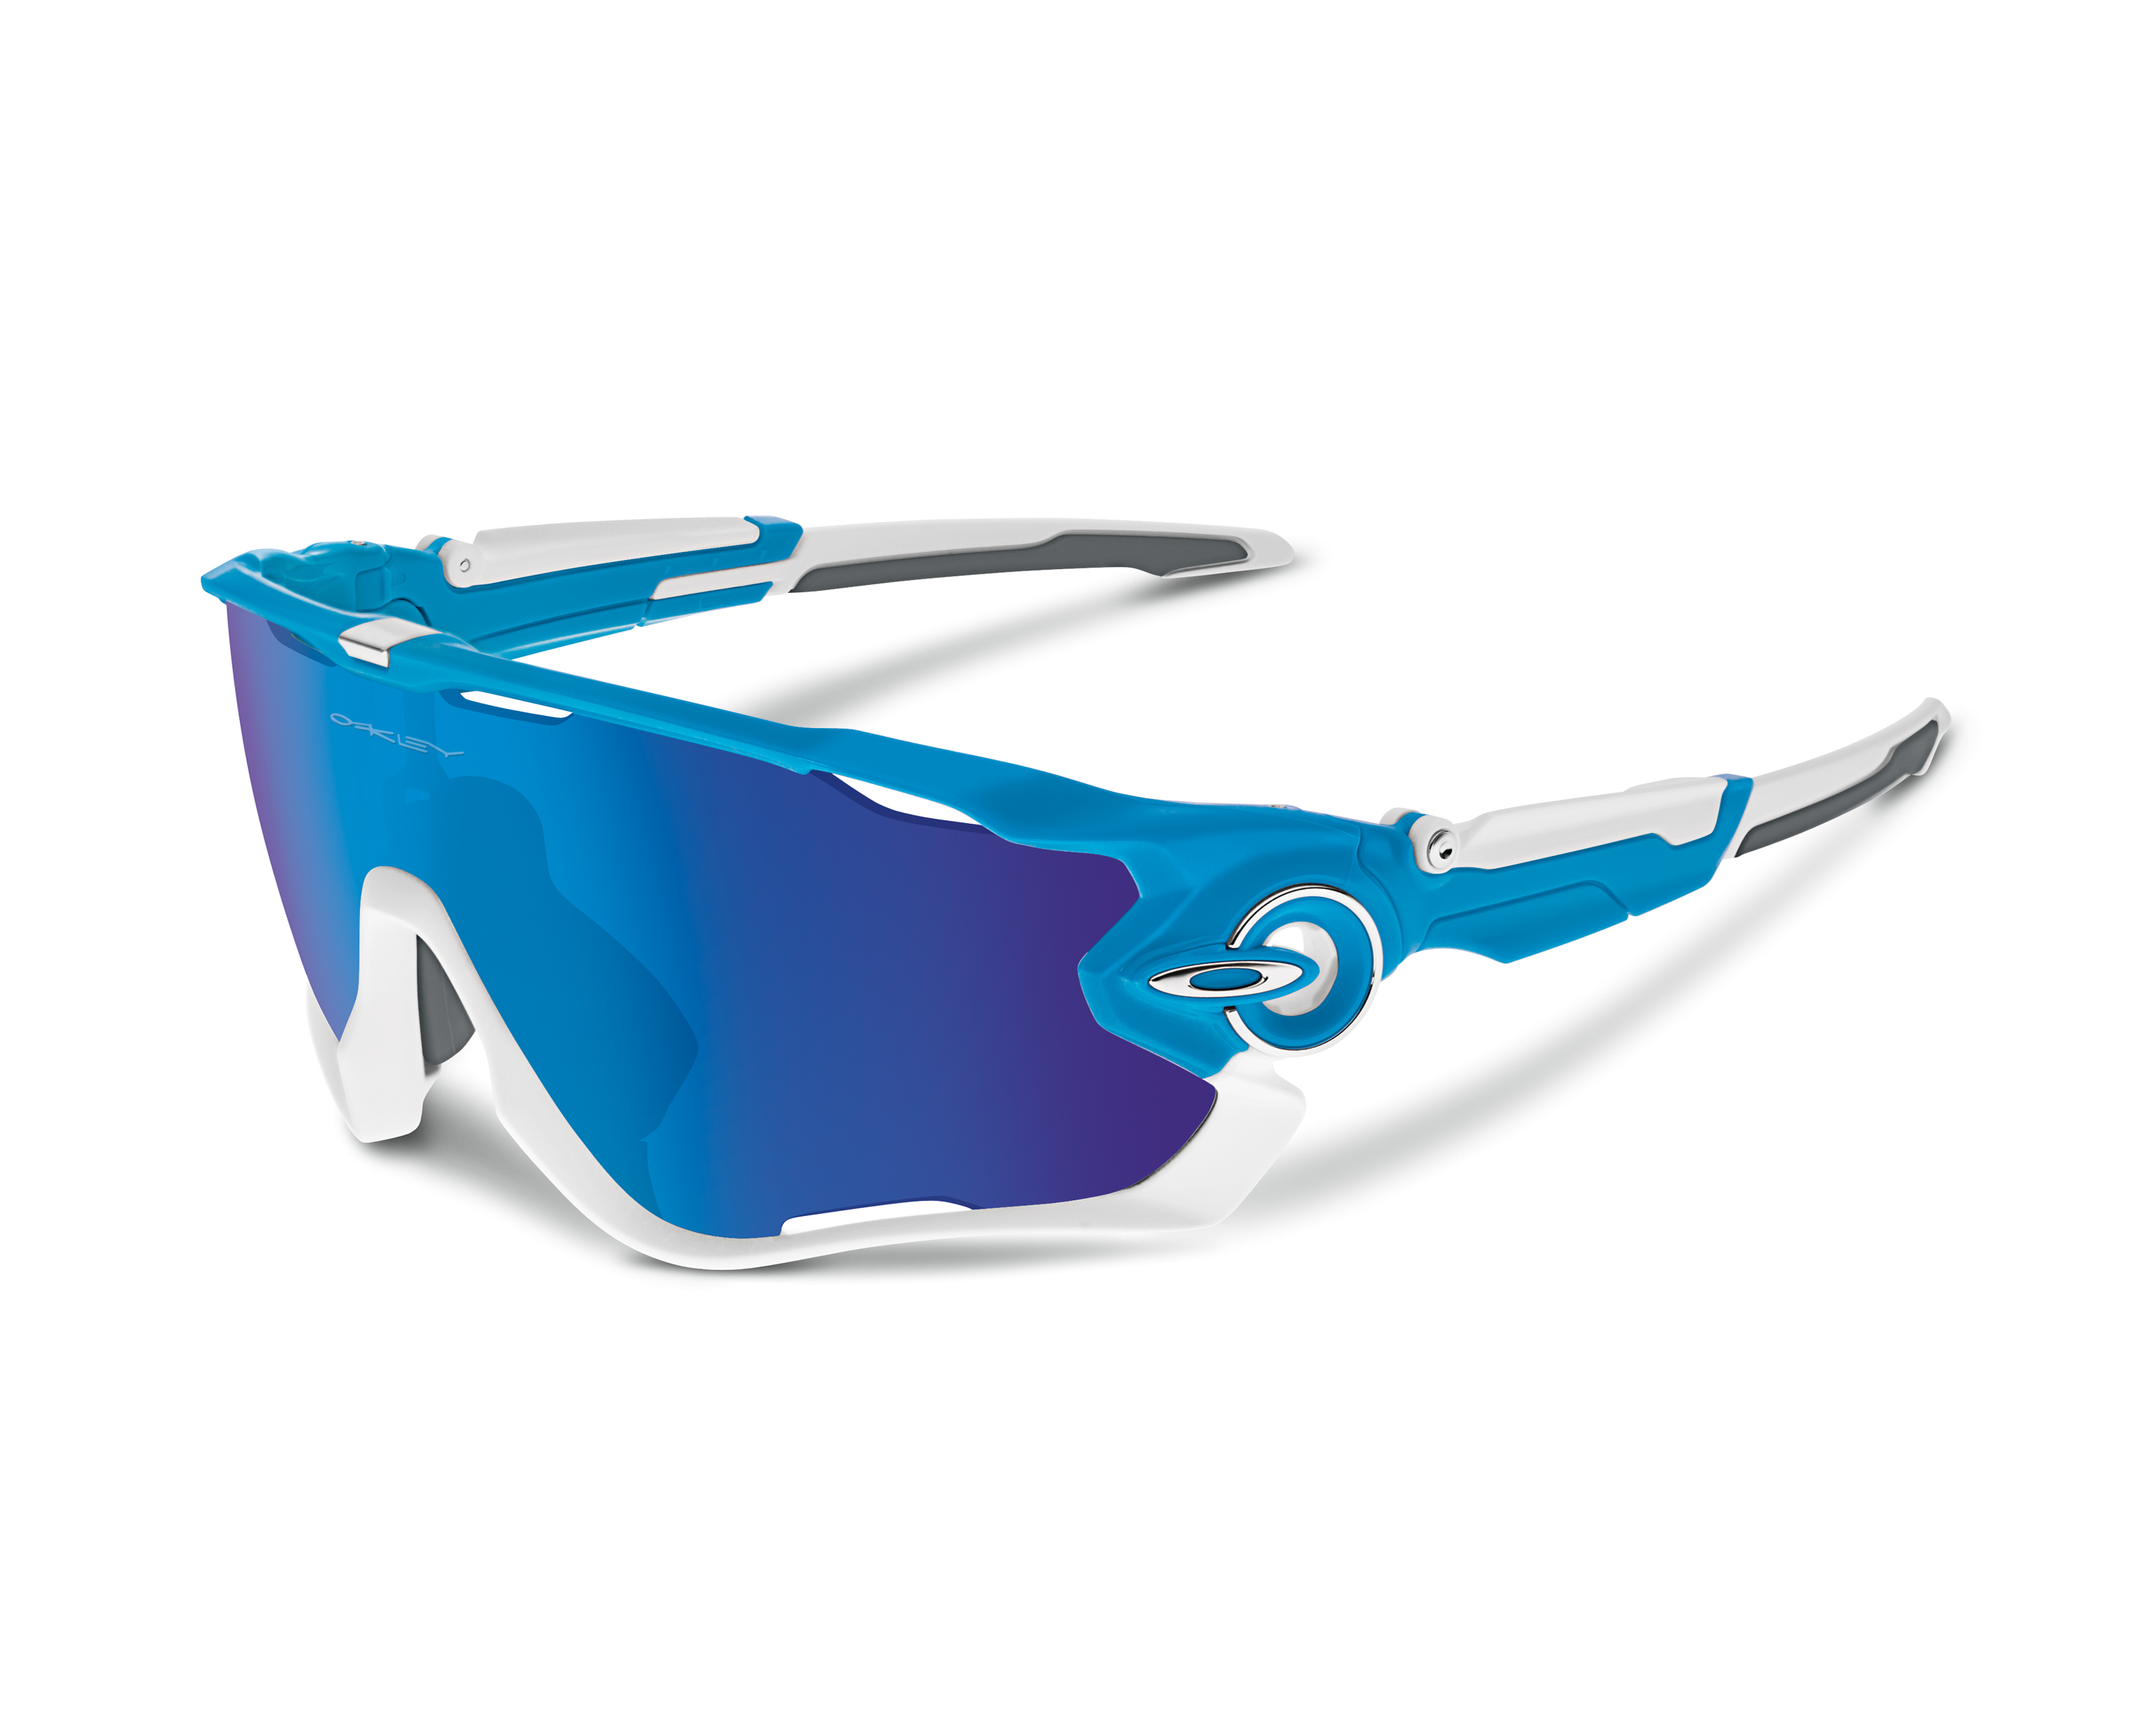 New Oakley Jawbreaker Inspired By Mark Cavendish Bicycle